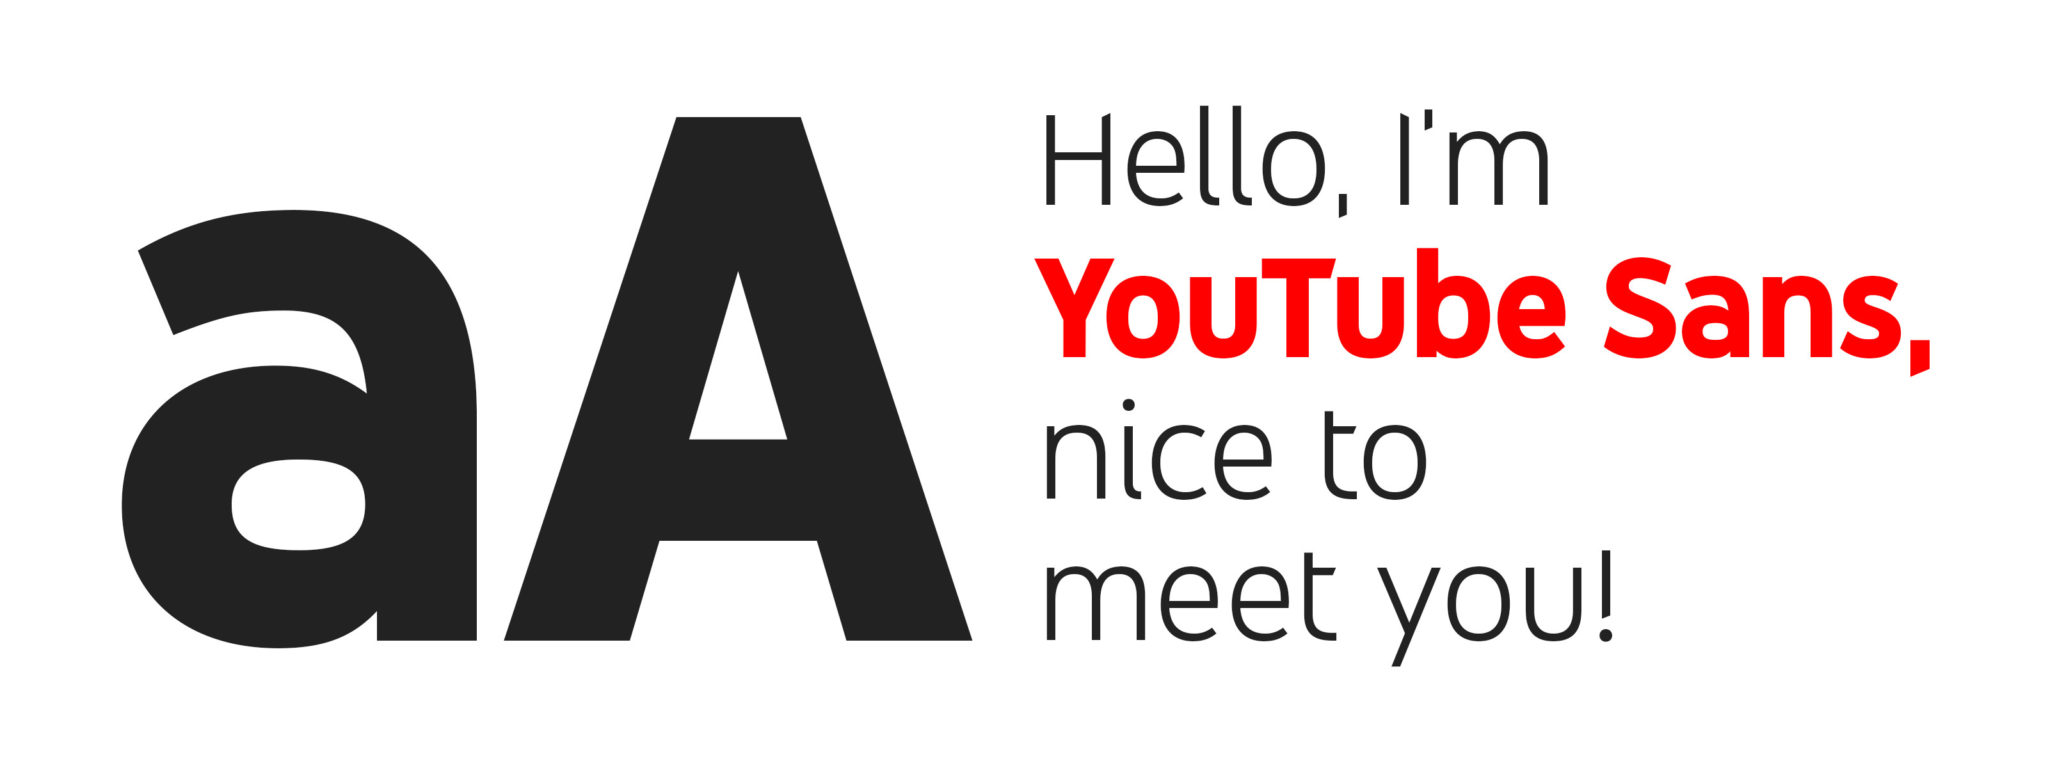 YouTube unveils first own-brand Font: YouTube Sans